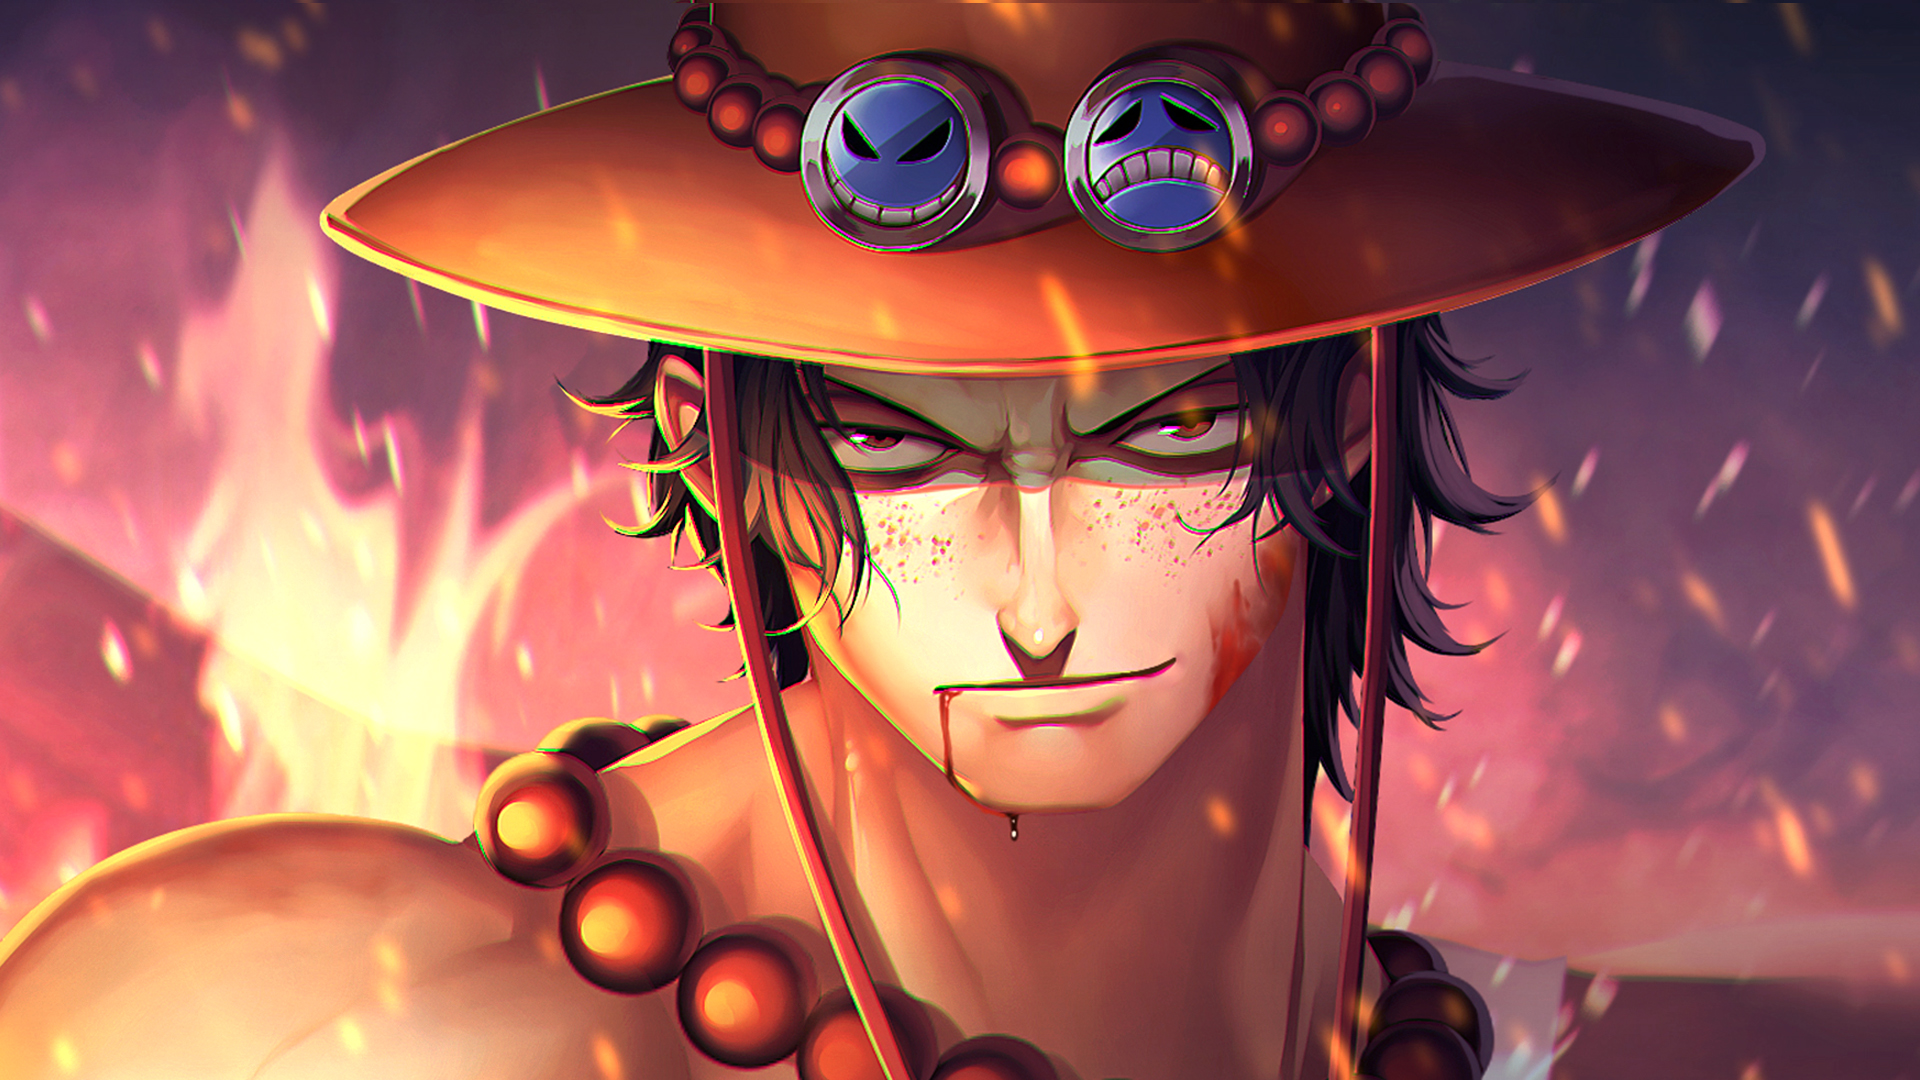 Portgas D Ace, HD Anime, 4k Wallpapers, Images ...